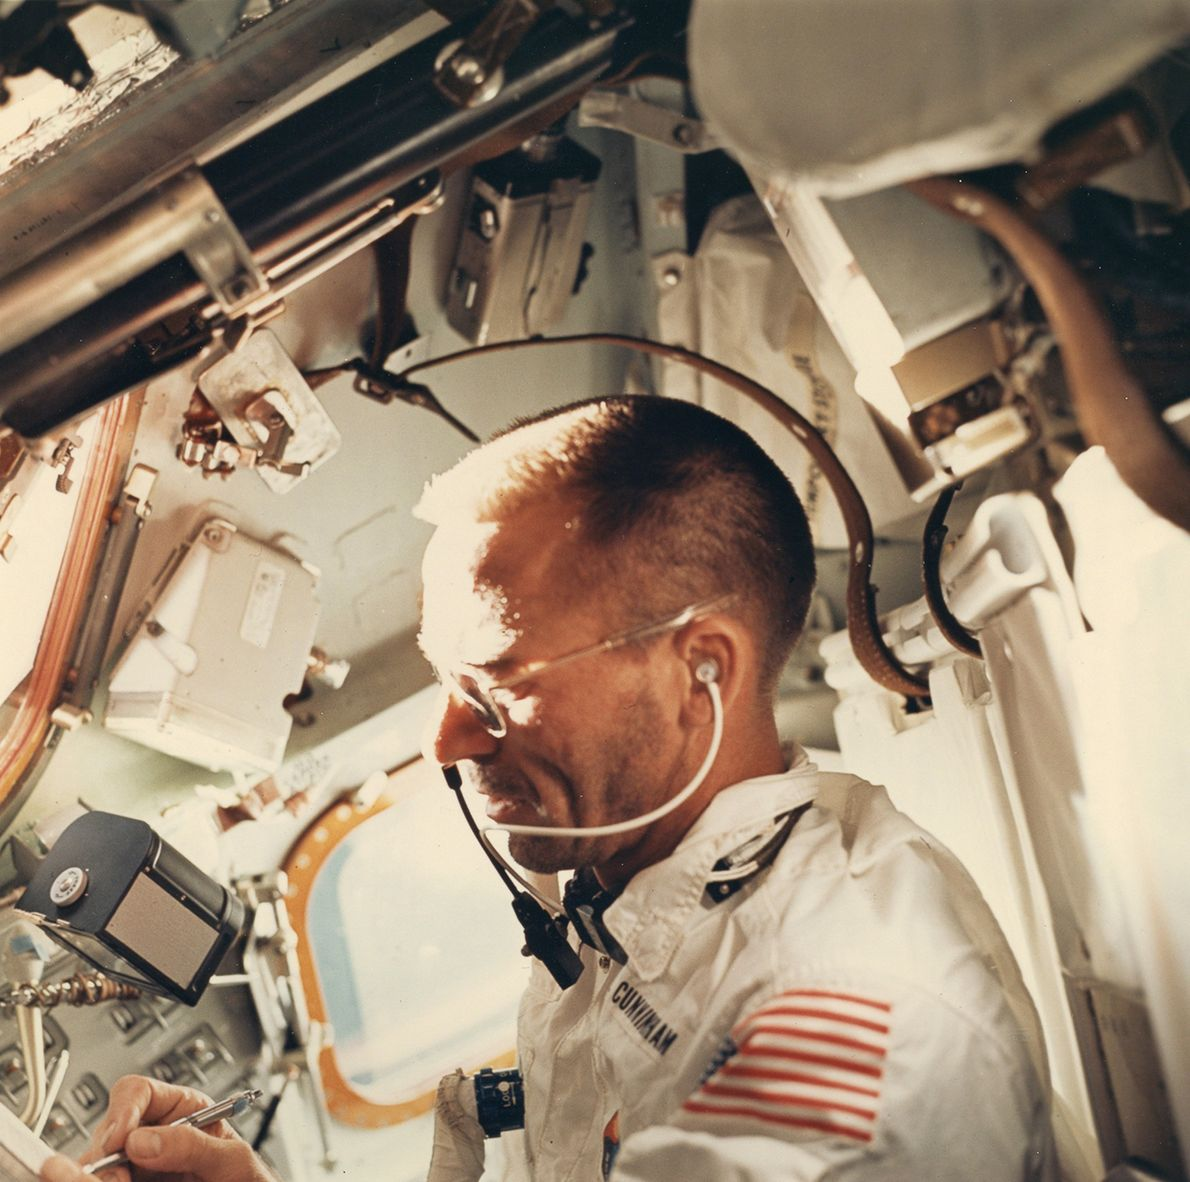 A 70mm Hasselblad camera floats over astronaut Walter Cunningham's right hand on Apollo 7. This photo ...